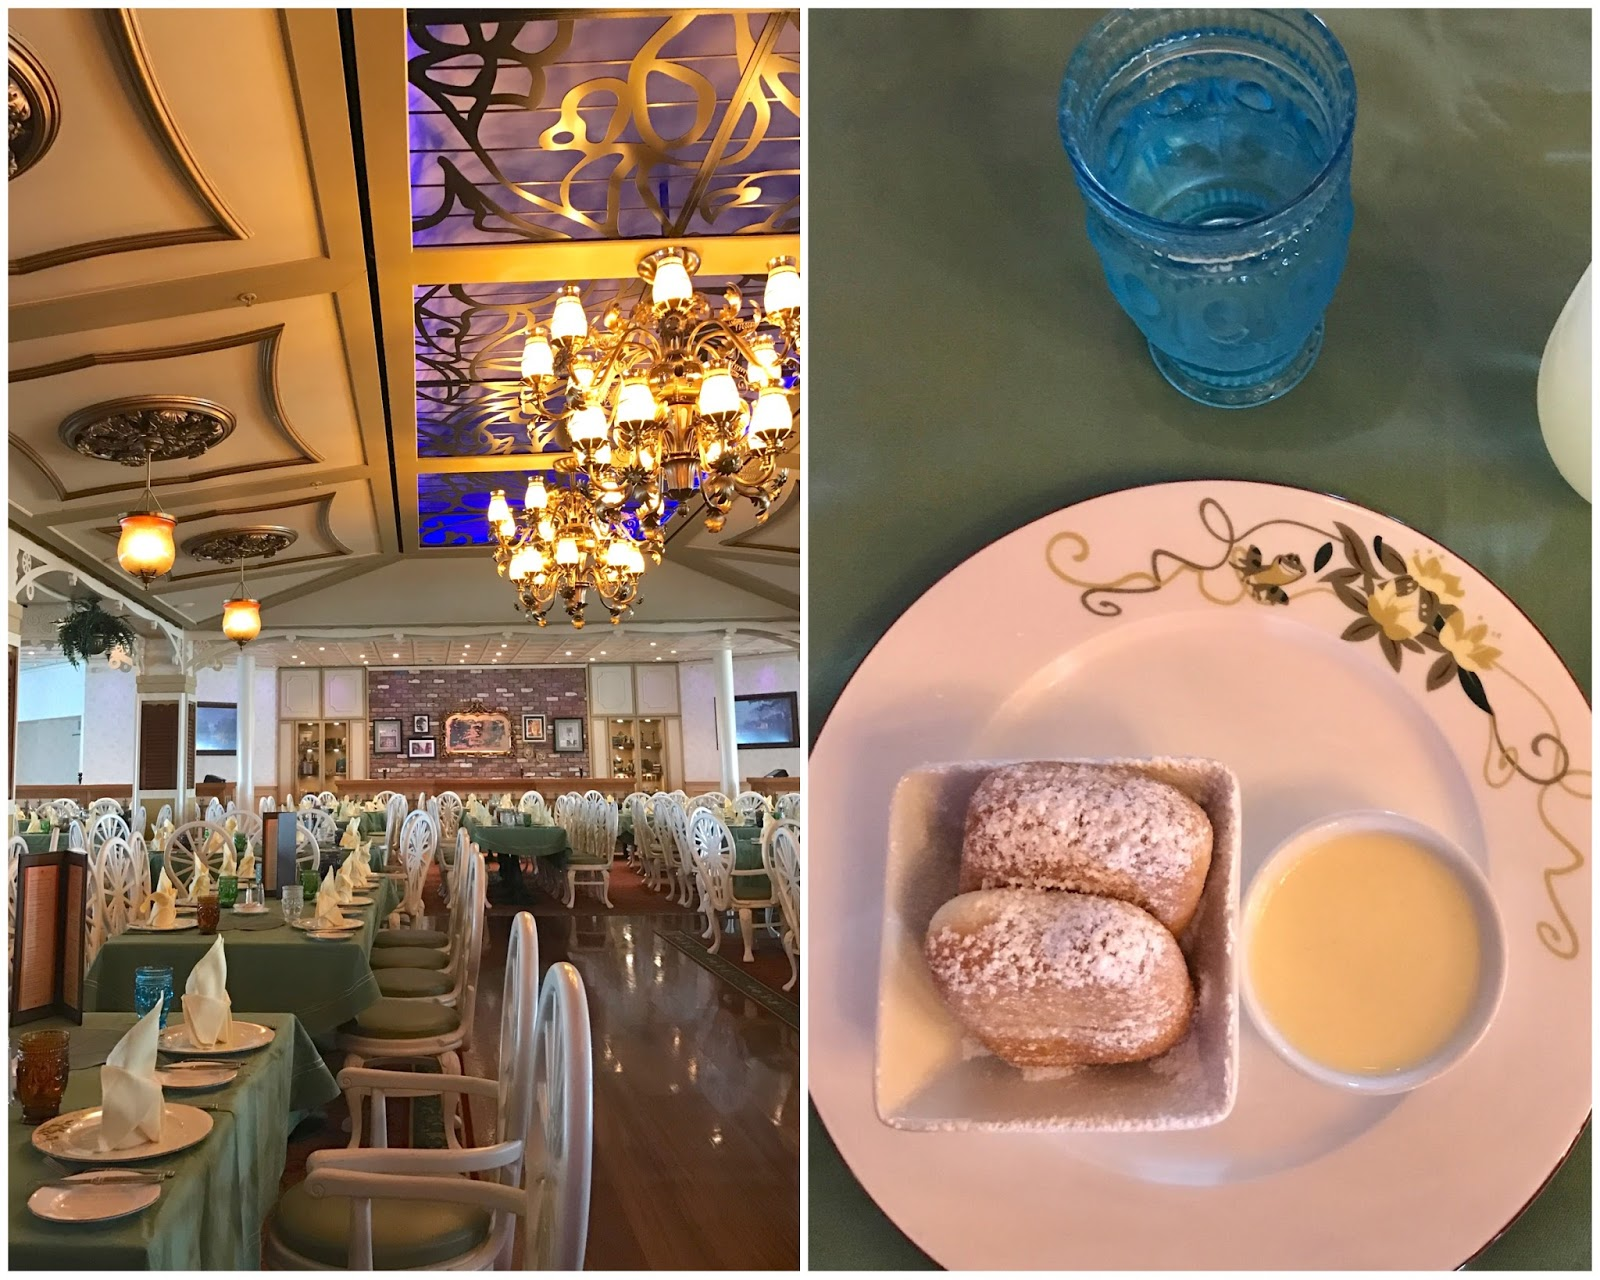 beignets at Tiana's place, new orleans restaurant on Disney Wonder